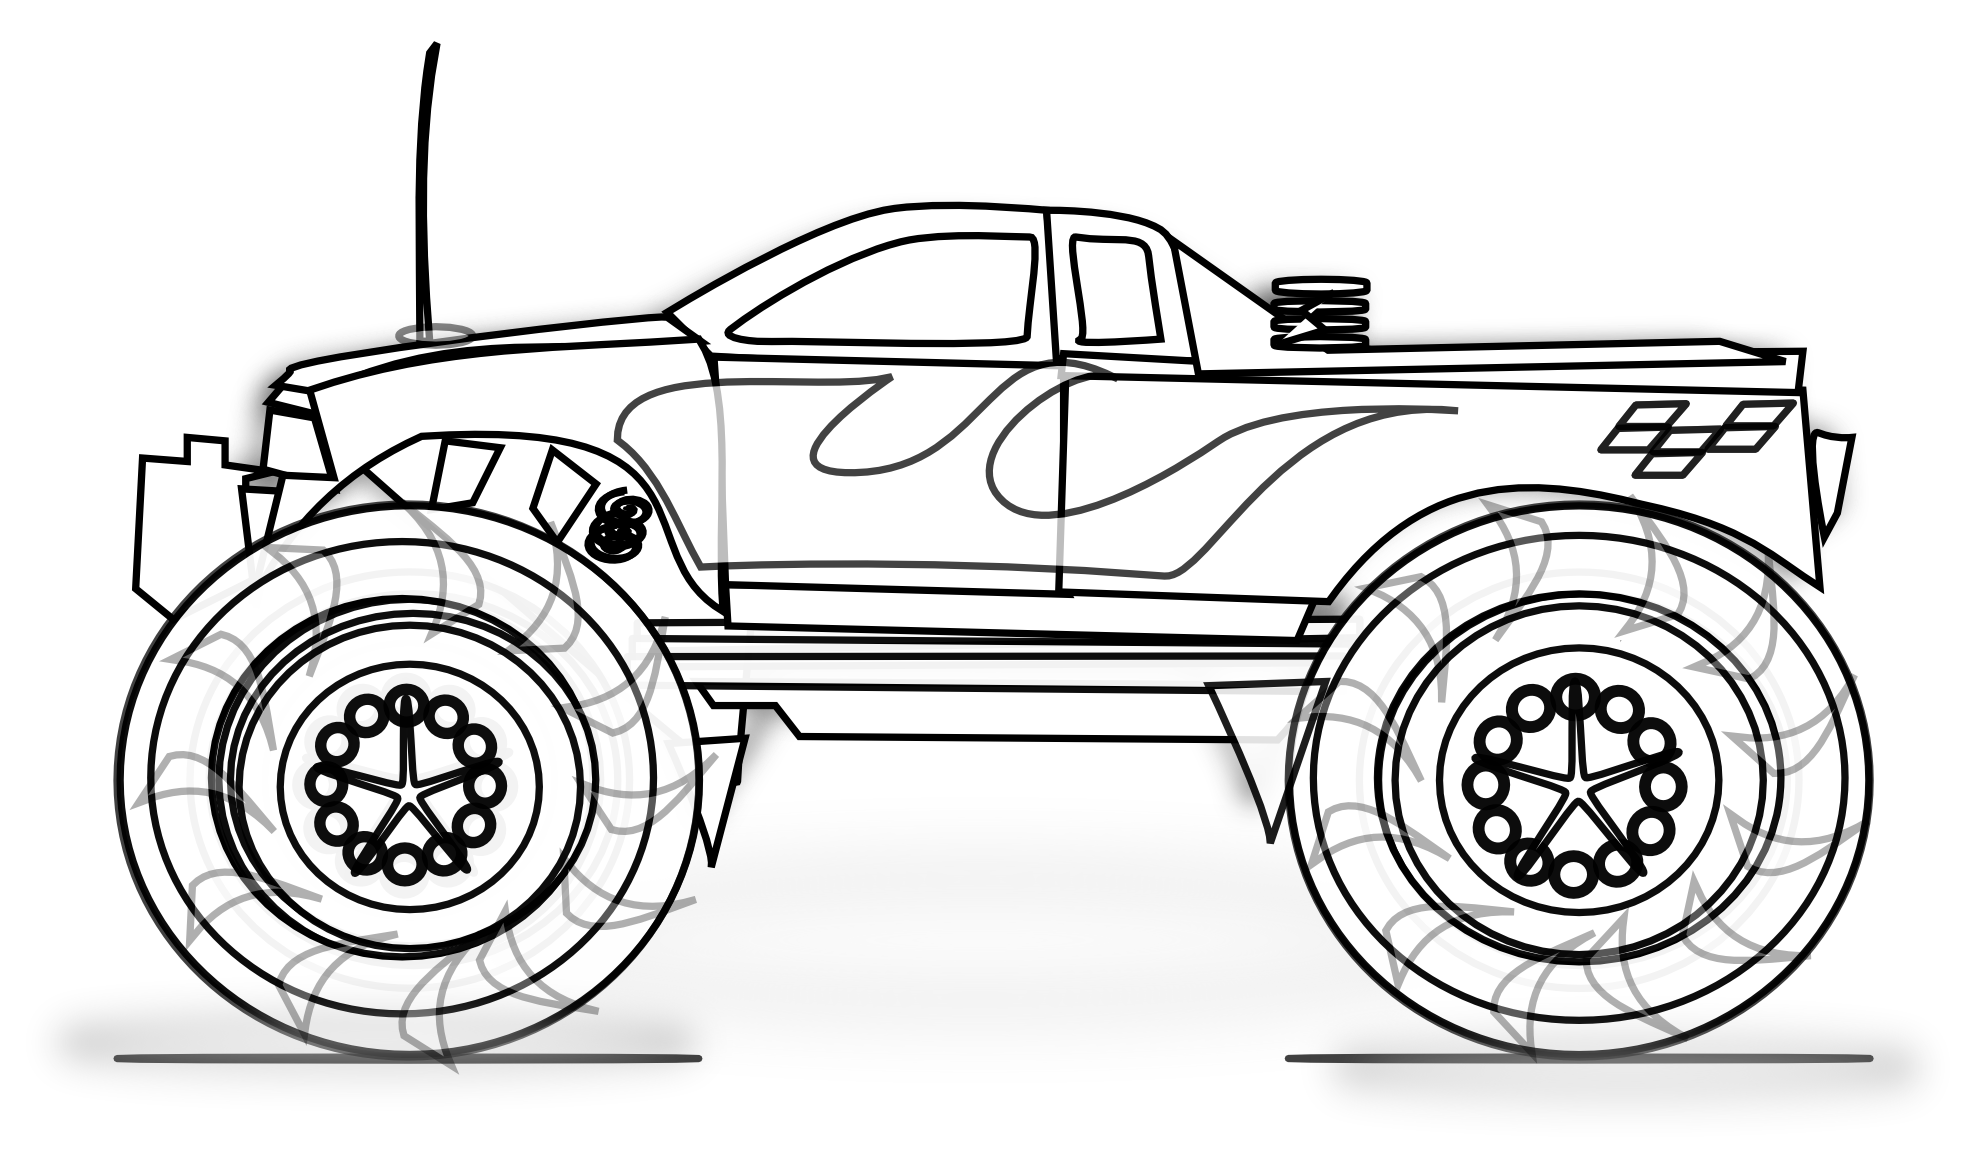 monster truck printable coloring pages - Monster Truck Coloring Page